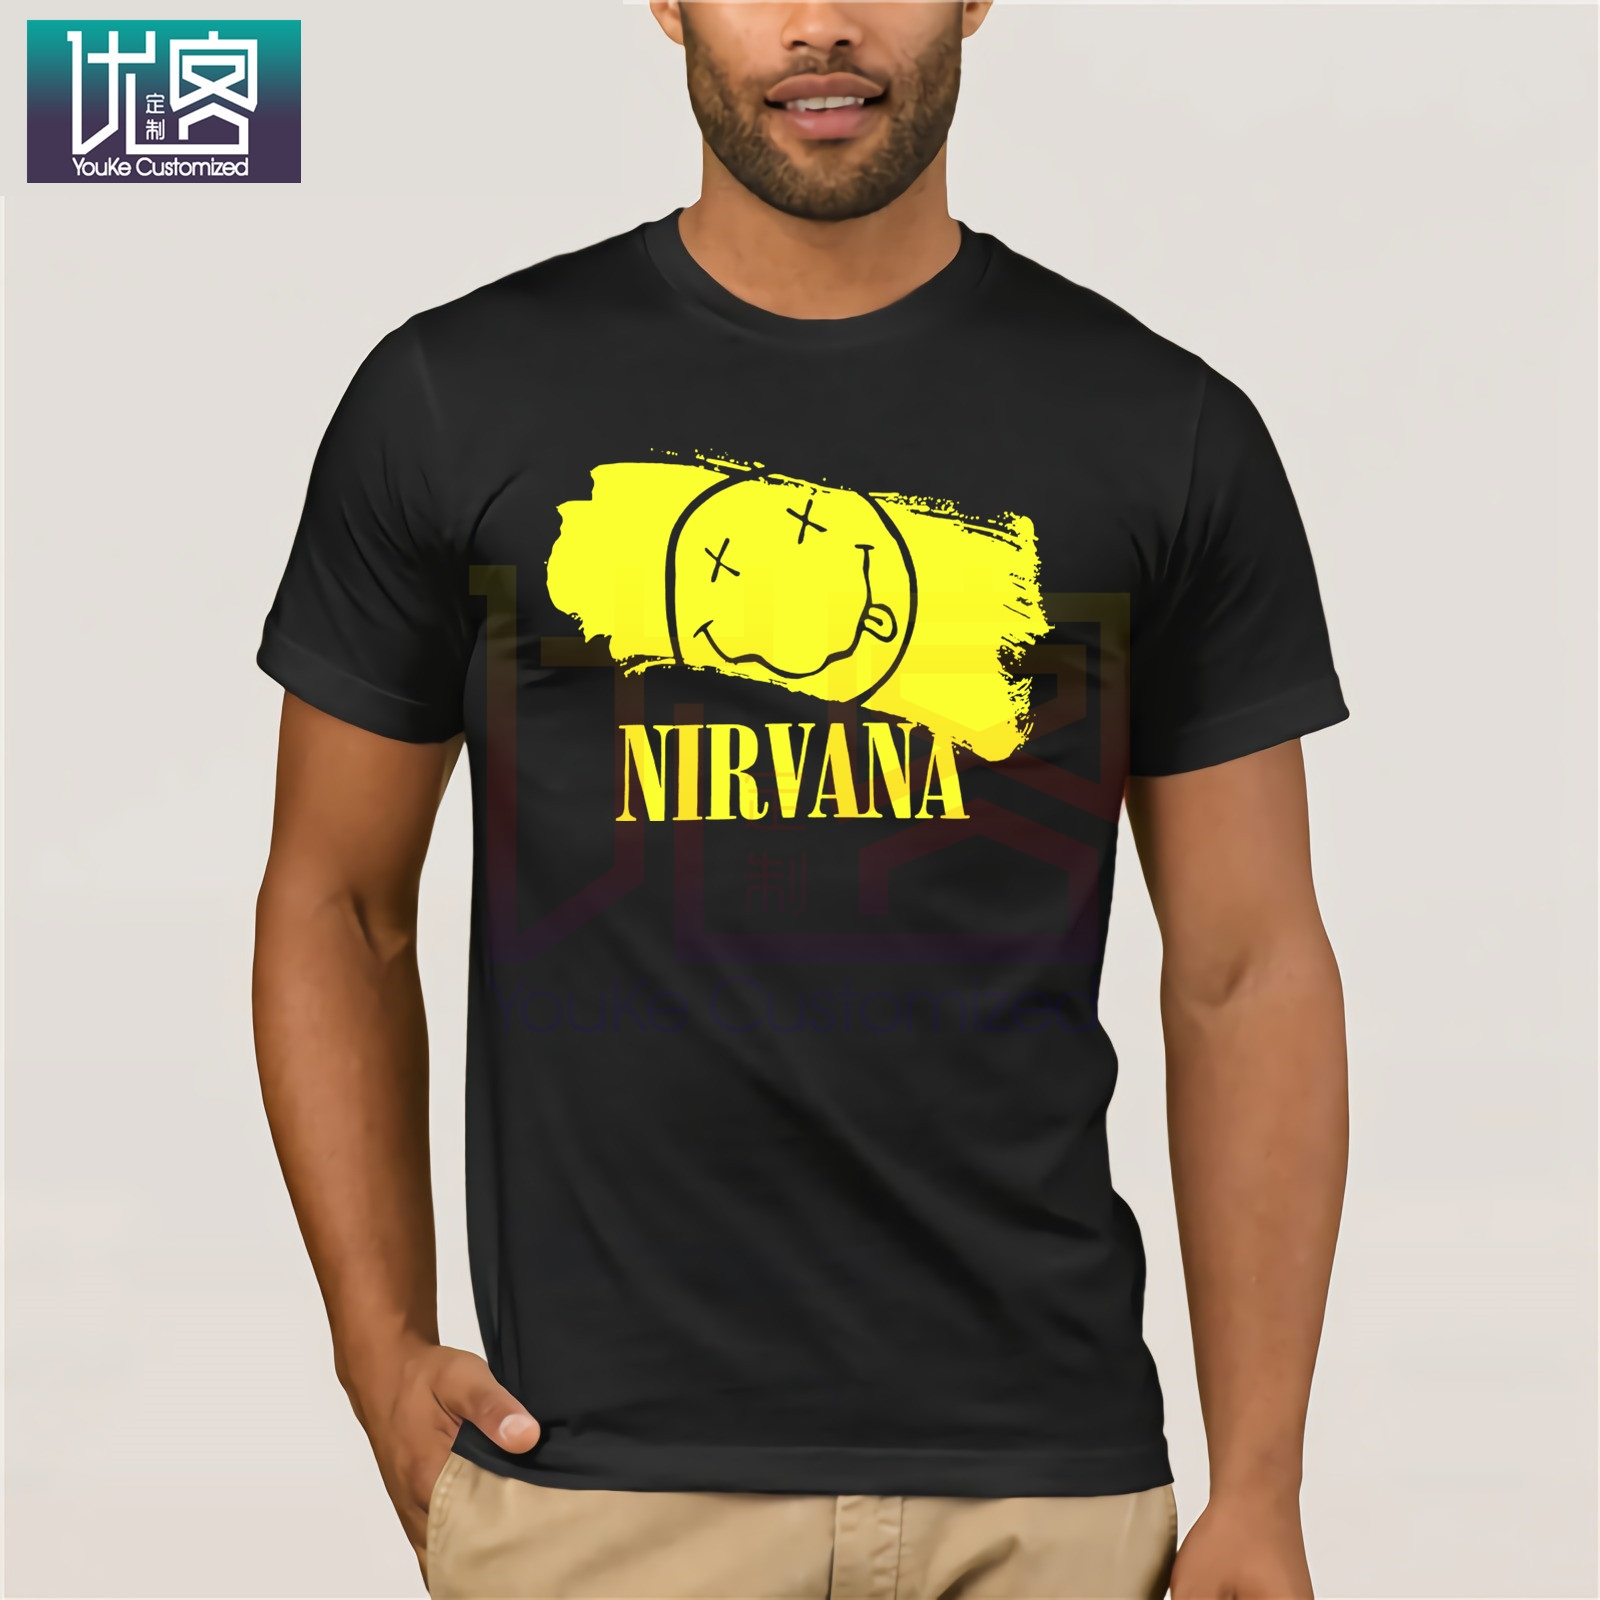 Nirvana Floral Smiley Face Image Black T Shirt New Official Soft